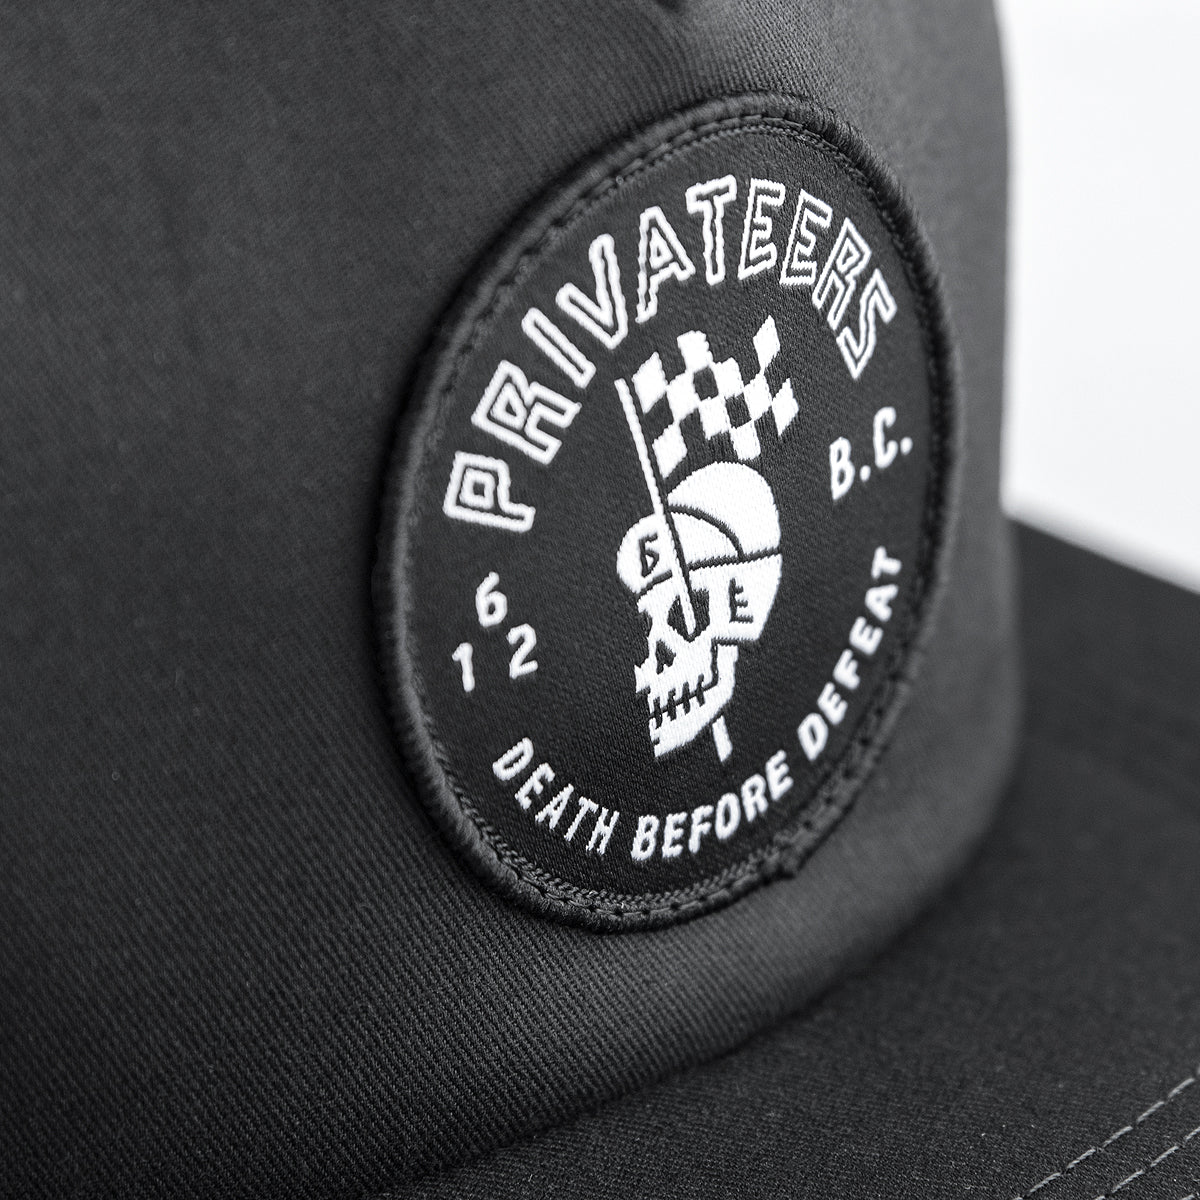 Privateer Hat